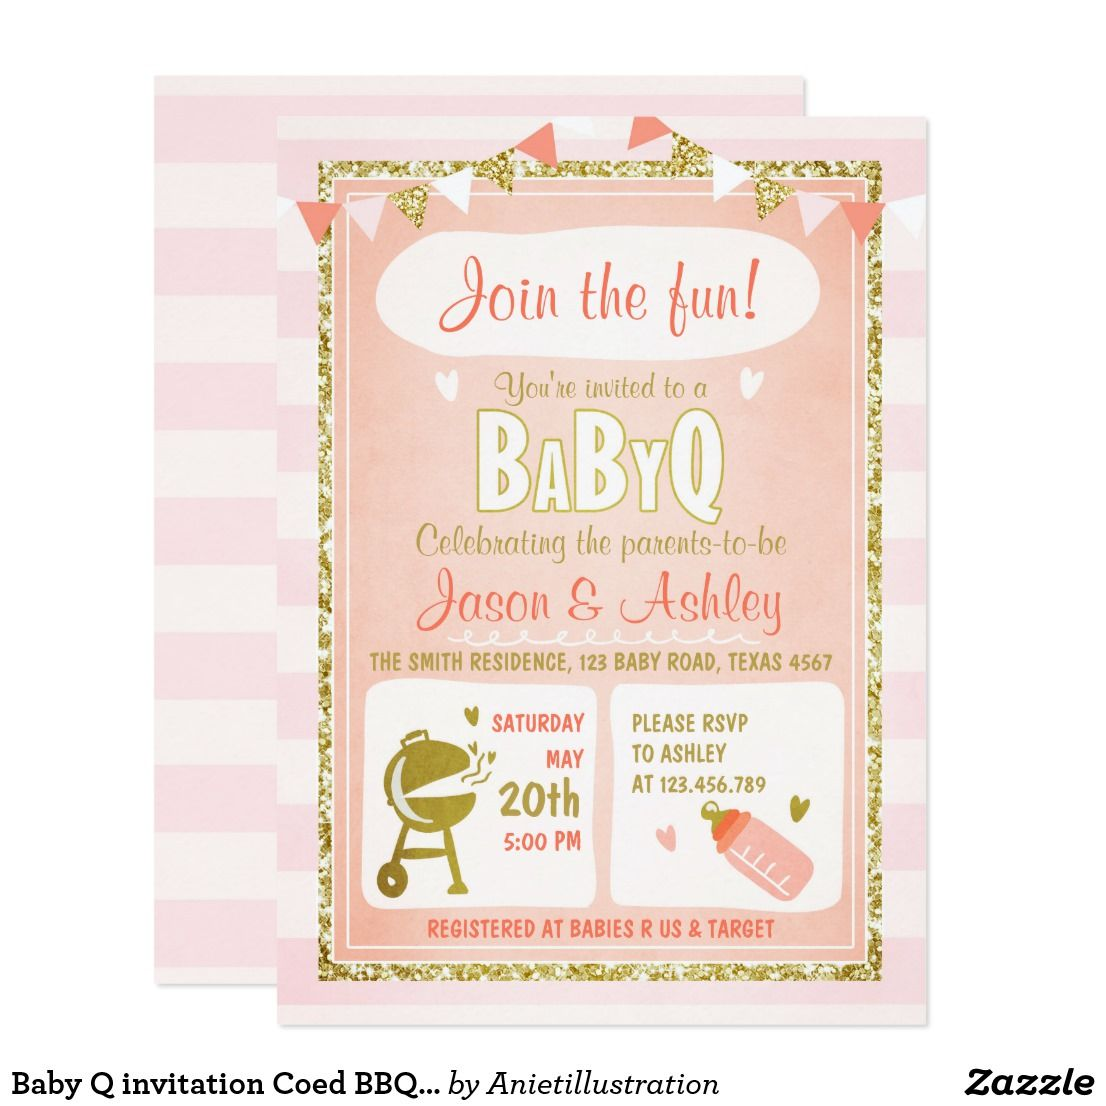 Baby Q Invitation Coed Bbq Baby Shower Invite Pink  Invitations